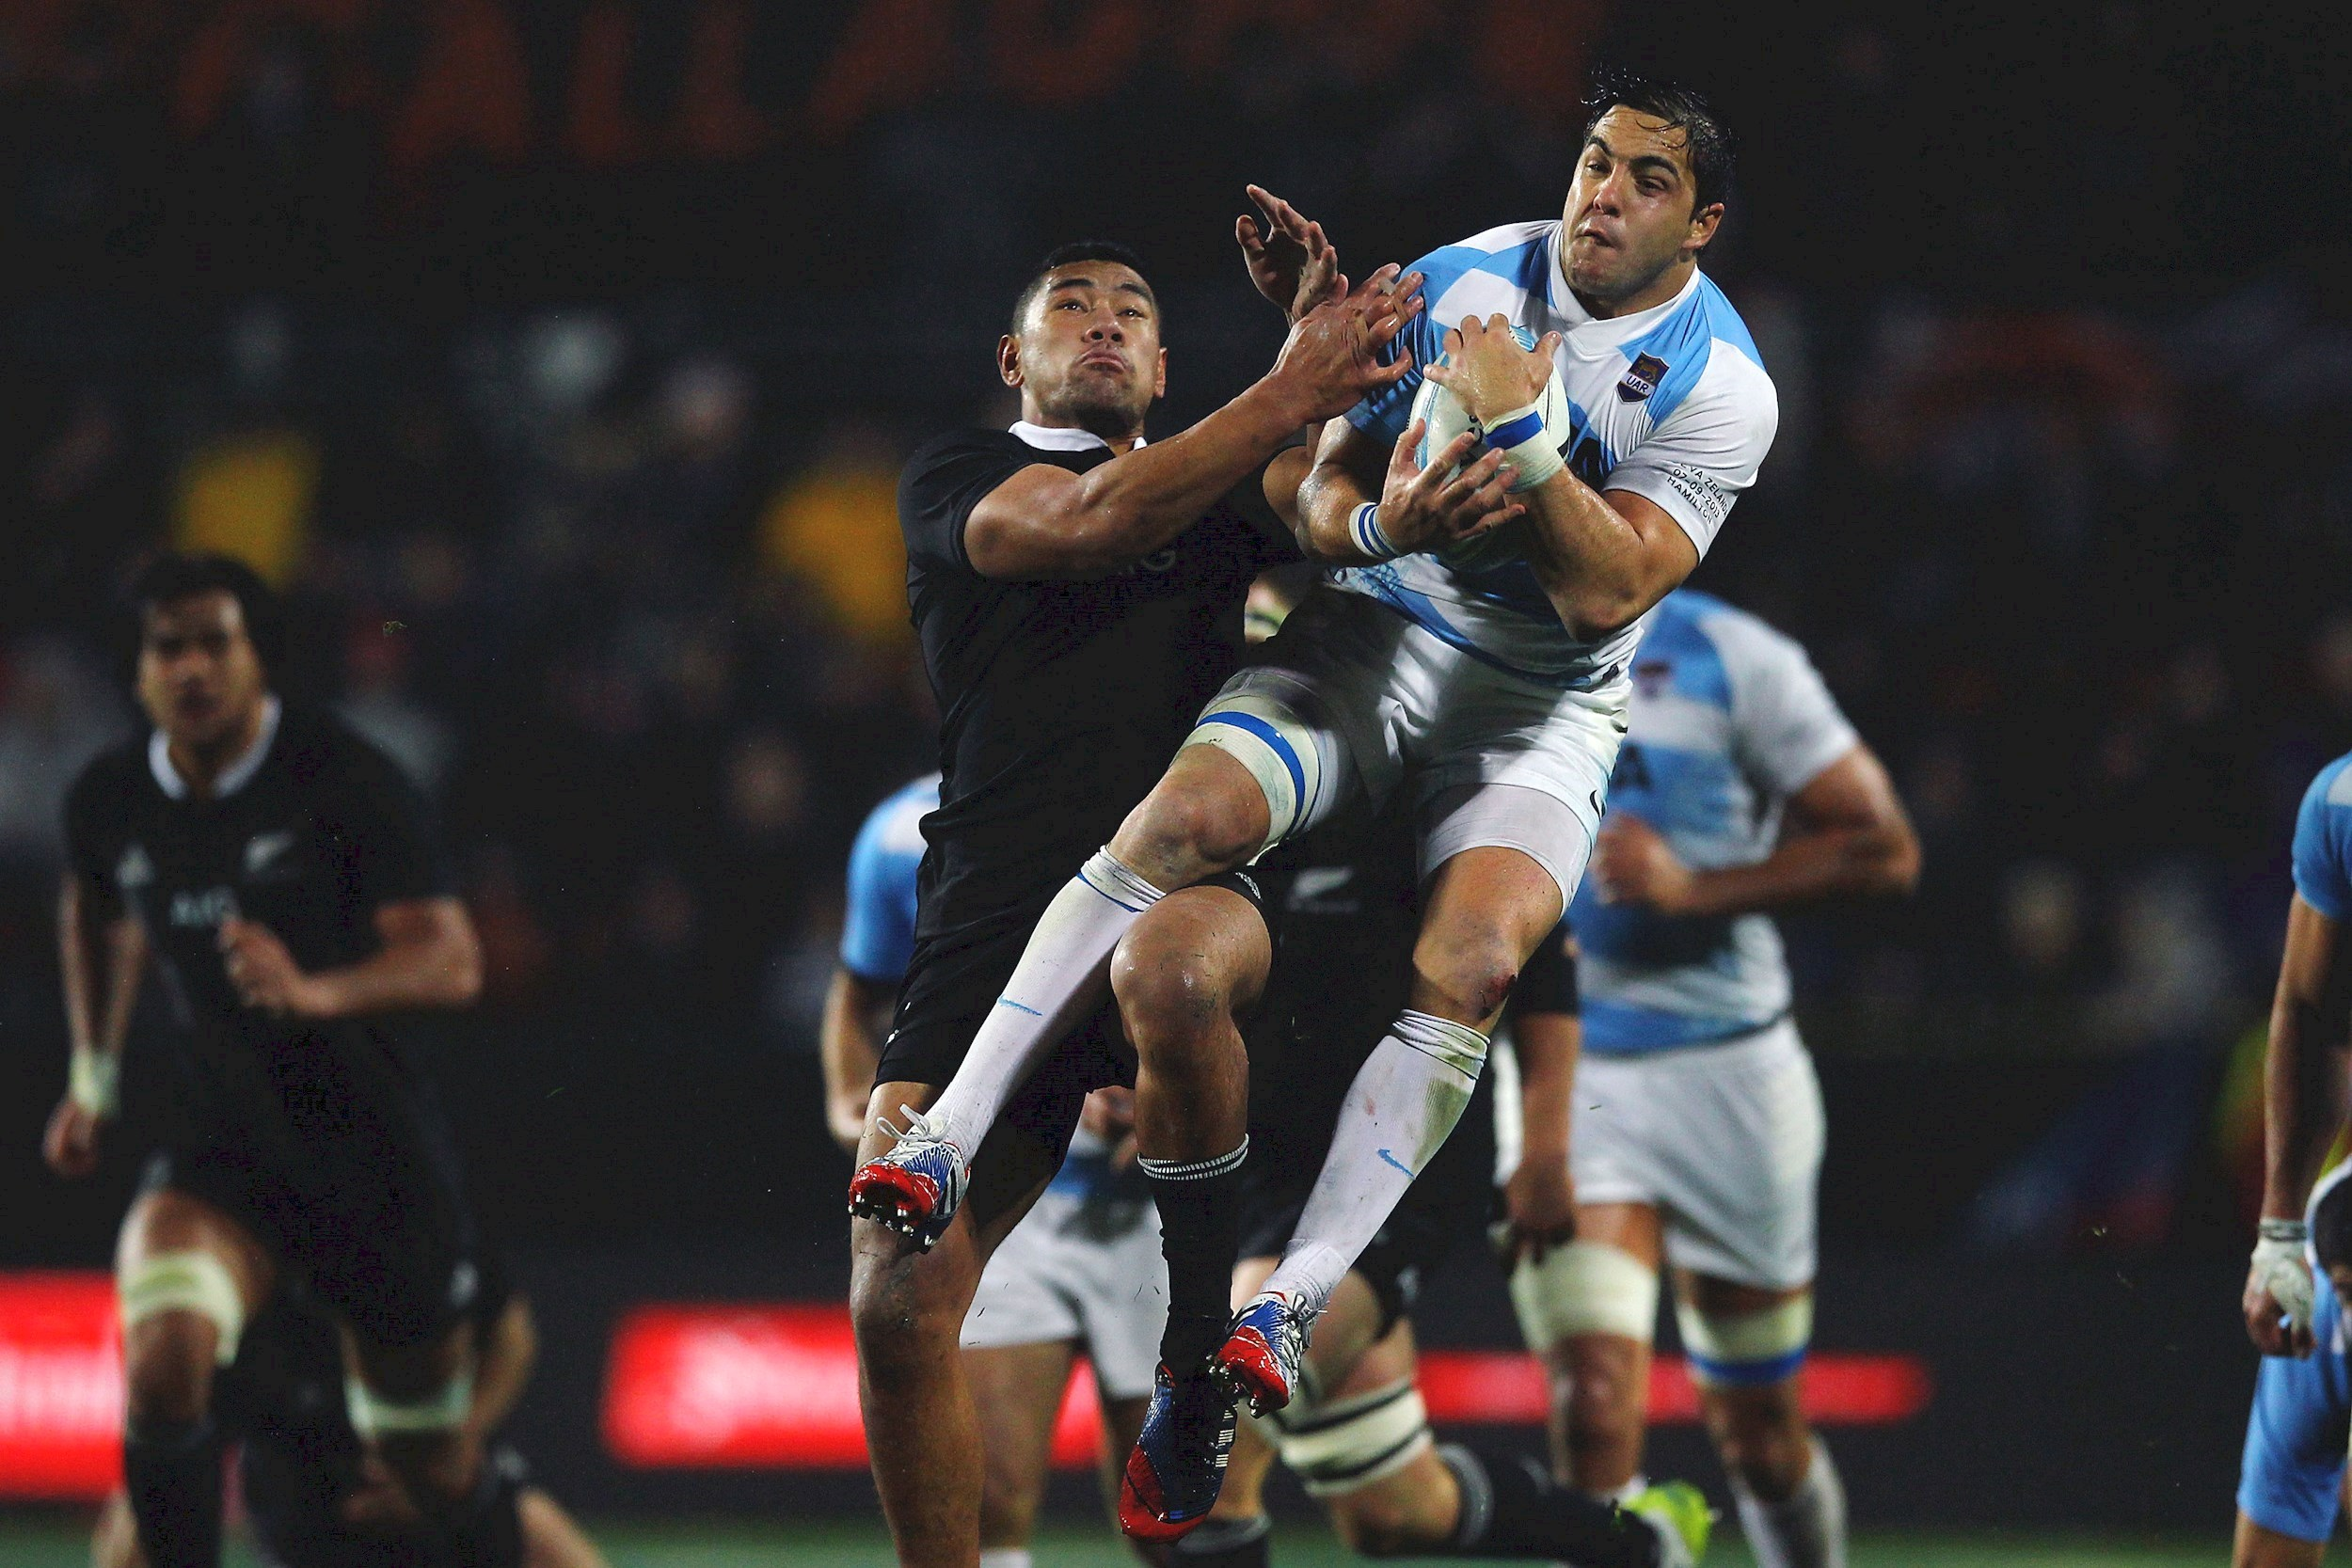 Agulla named in Pumas squad for Tongan tussle